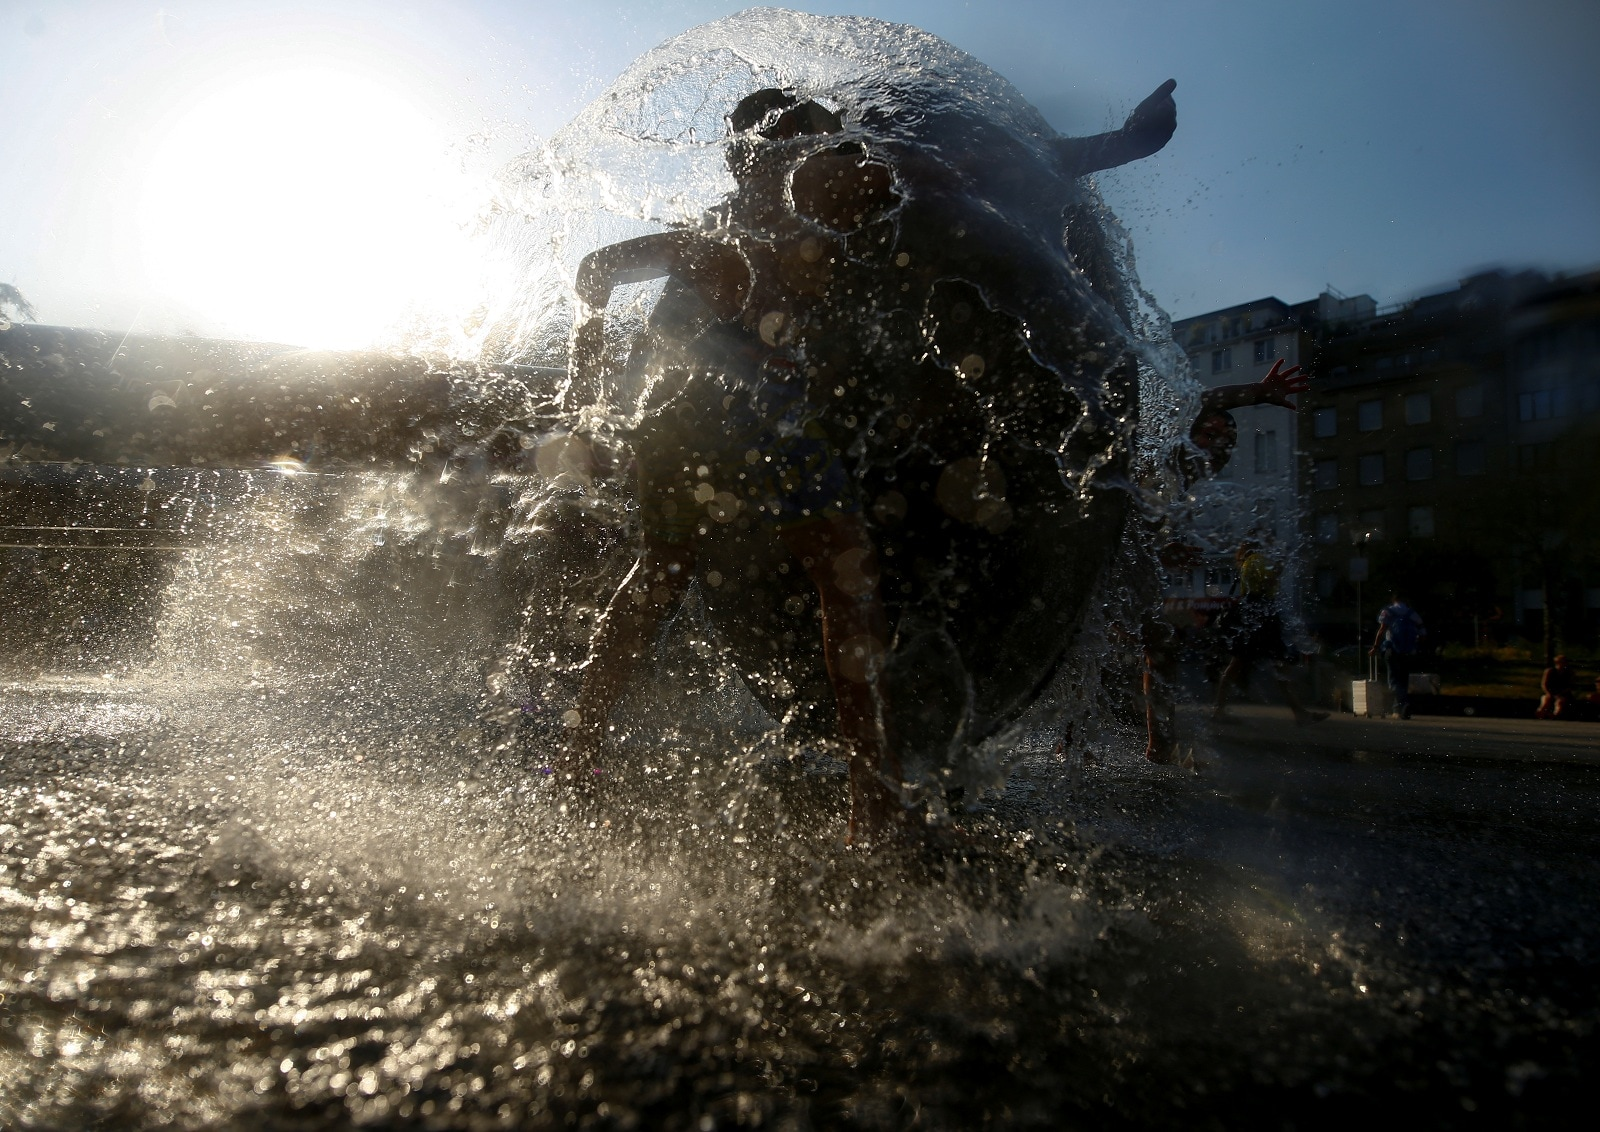 Children play in a fountain on a hot summer day in Cologne, Germany, June 26, 2019. REUTERS/Thilo Schmuelgen